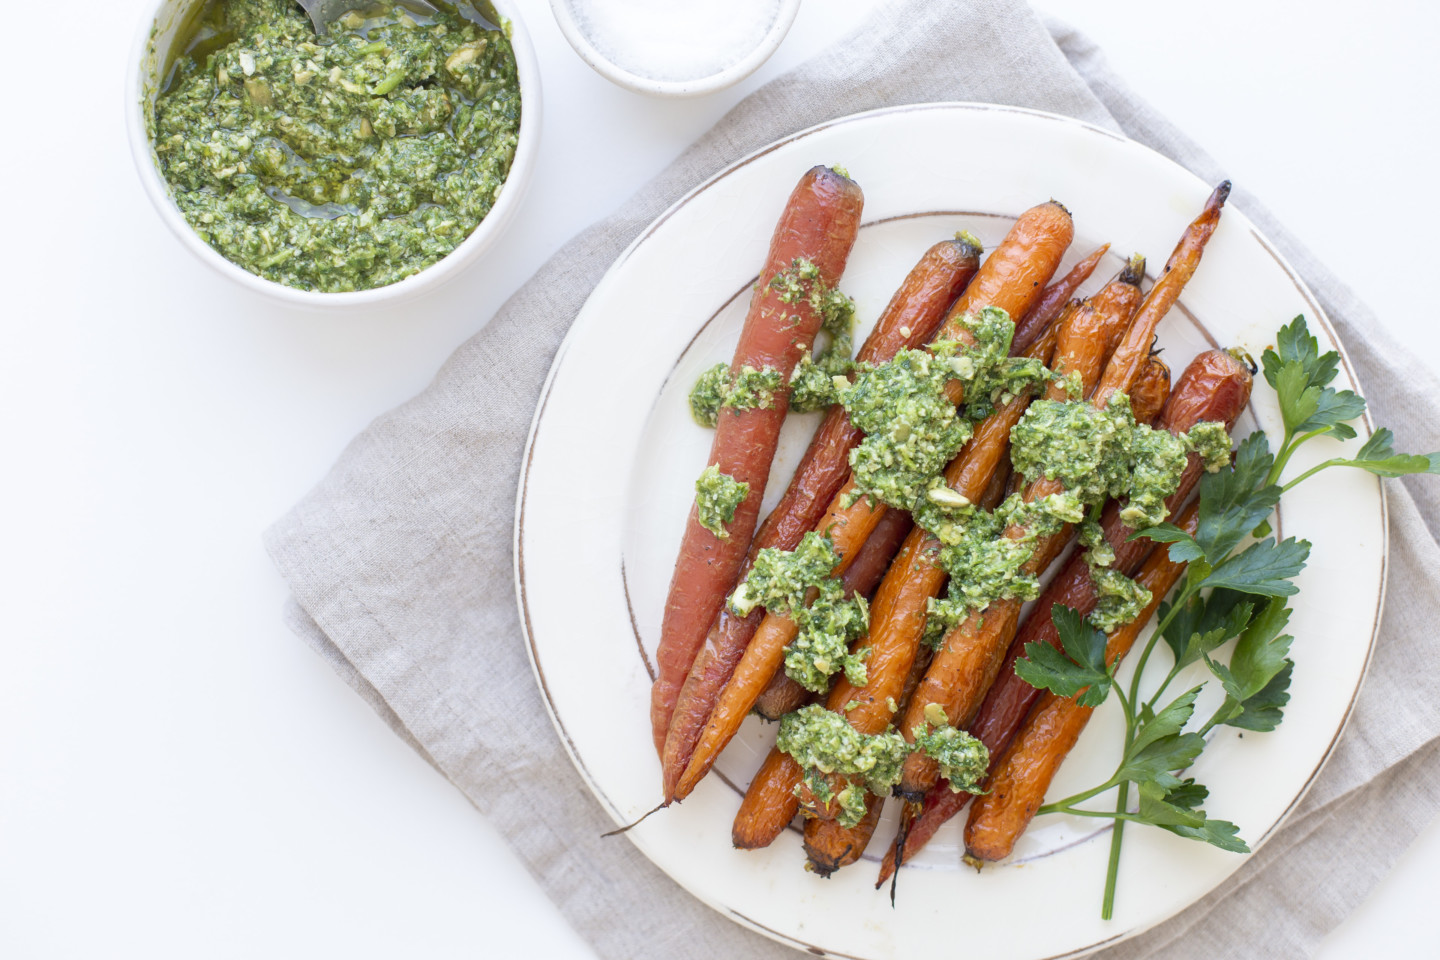 A plate of roasted carrots that are topped with carrot top pesto along with a smaller bowl of pesto.